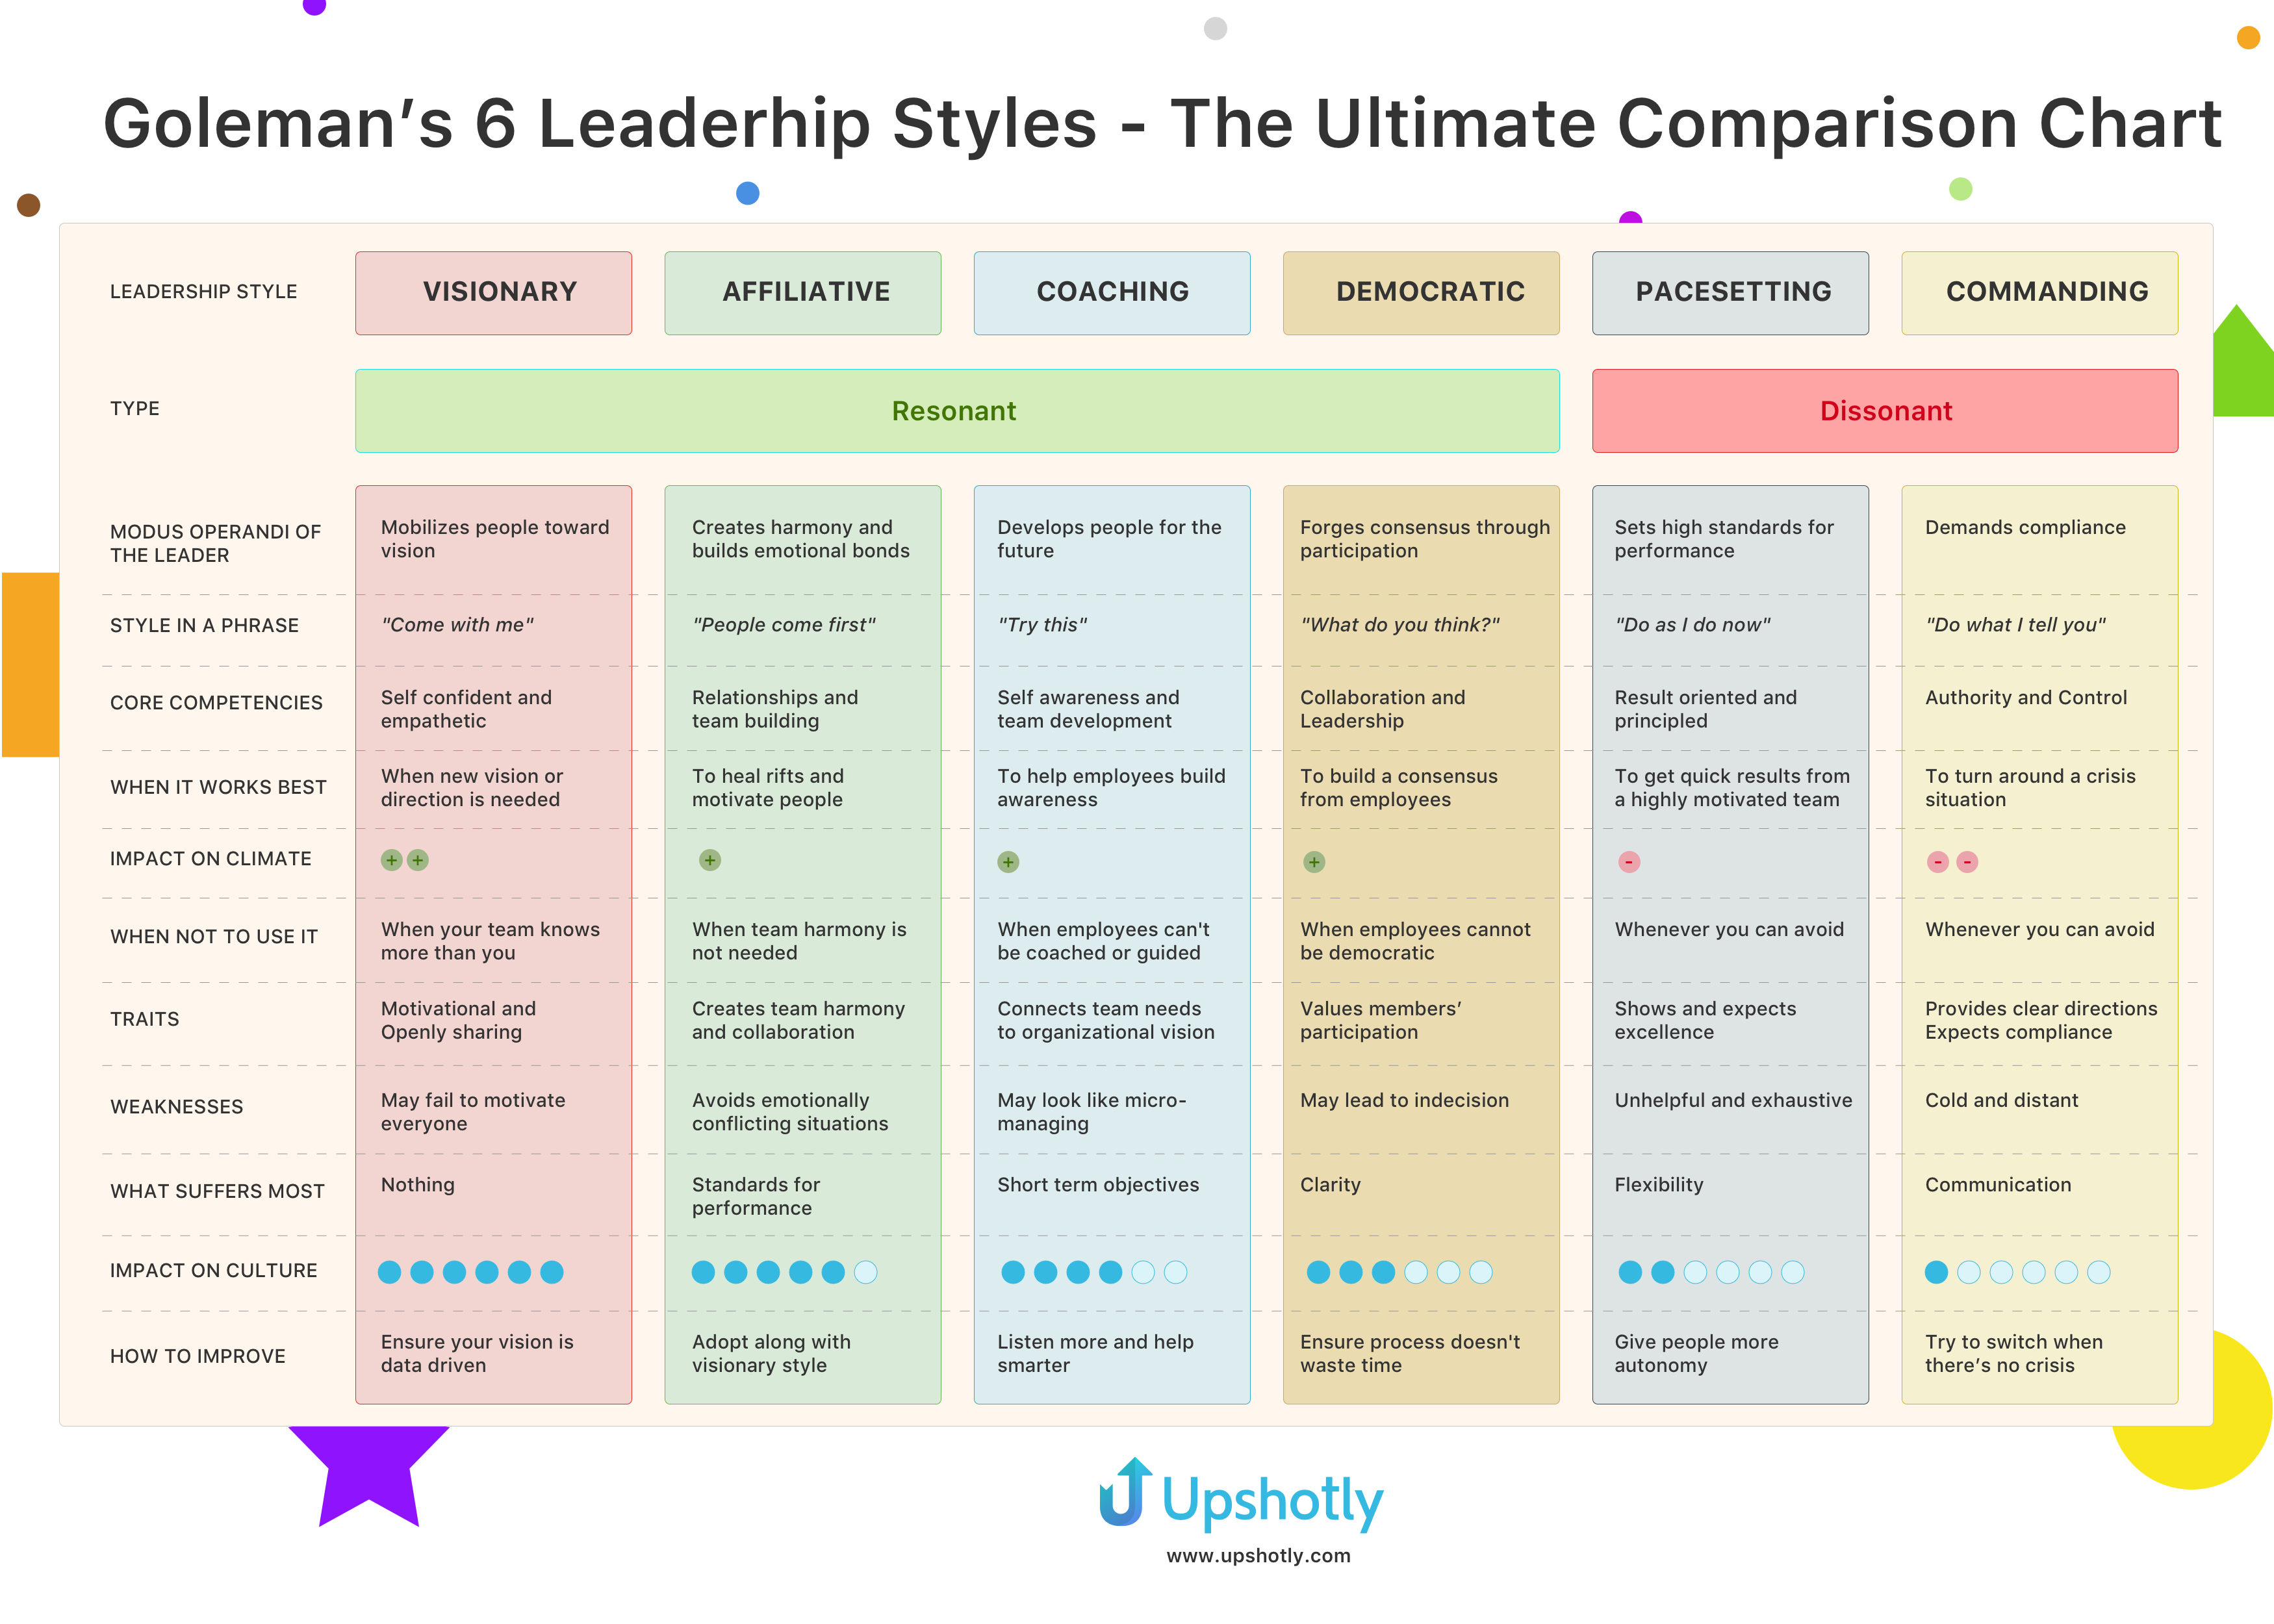 Daniel Goleman's Six Leadership Styles - The Ultimate Comparison Chart